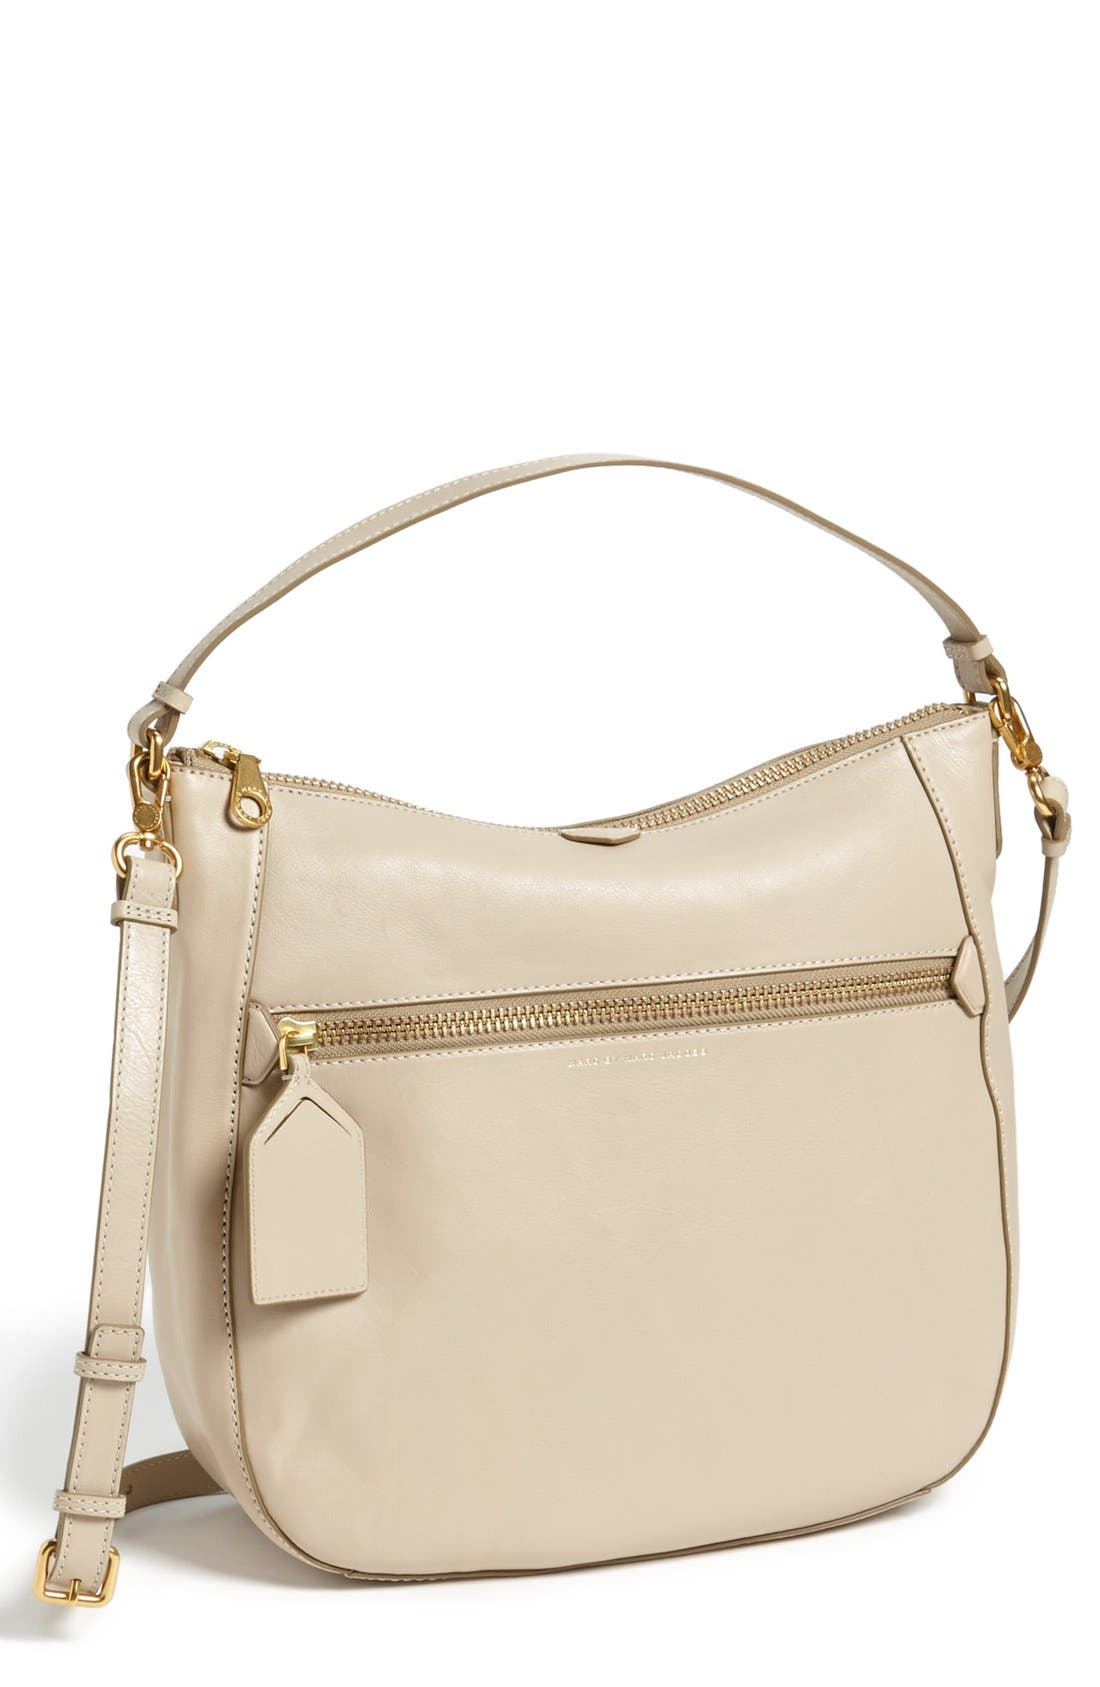 MARC BY MARC JACOBS 'Globetrotter - Kirsten' Leather Satchel, Main, color, 270